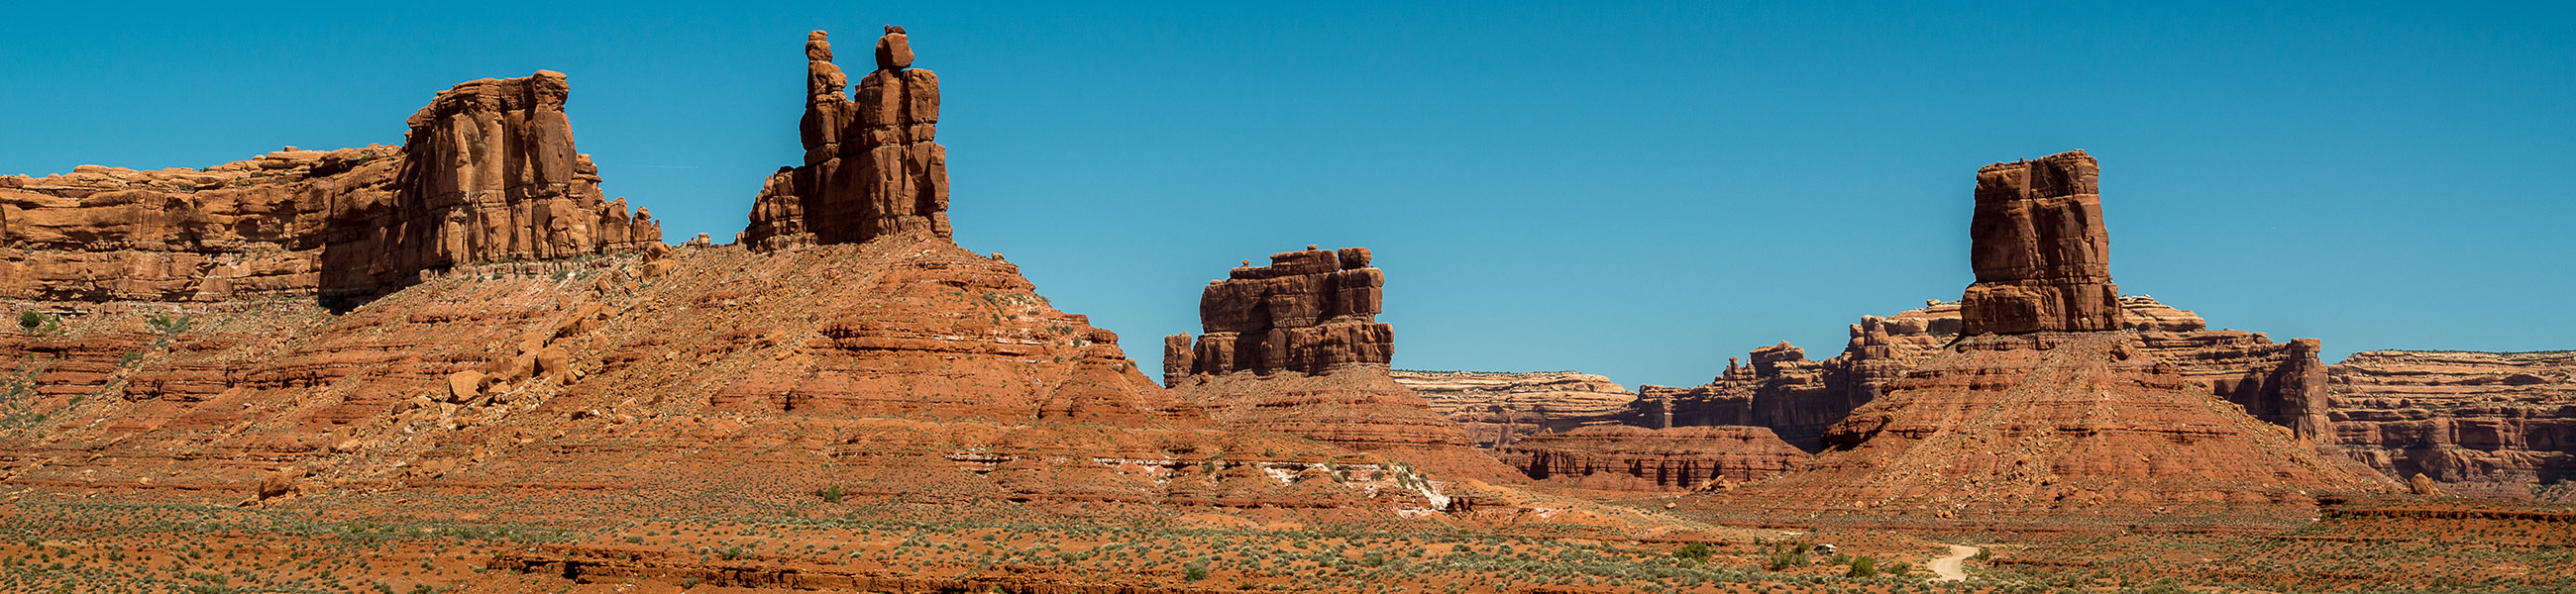 Paysage de Valley of the Gods, Utah